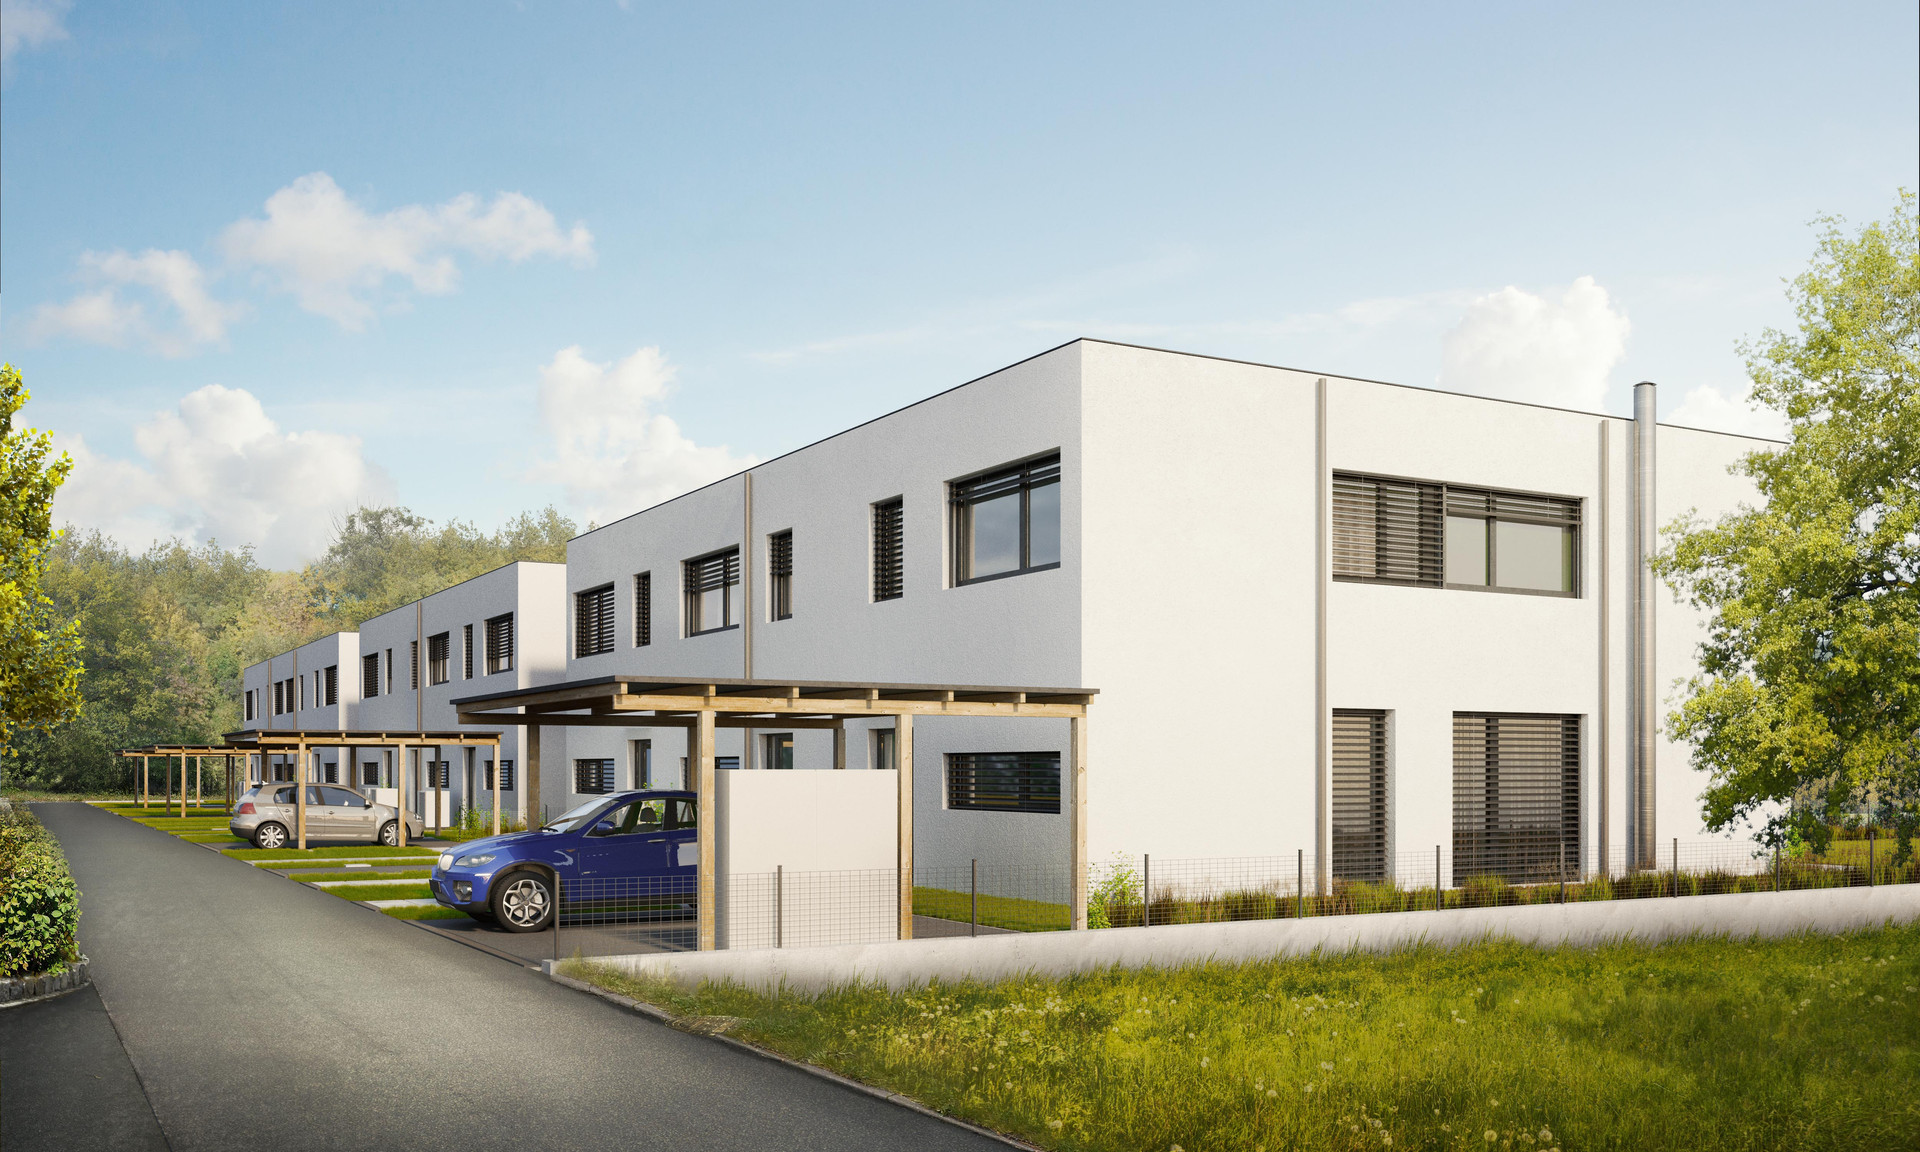 Residential house facility in Sittendorf